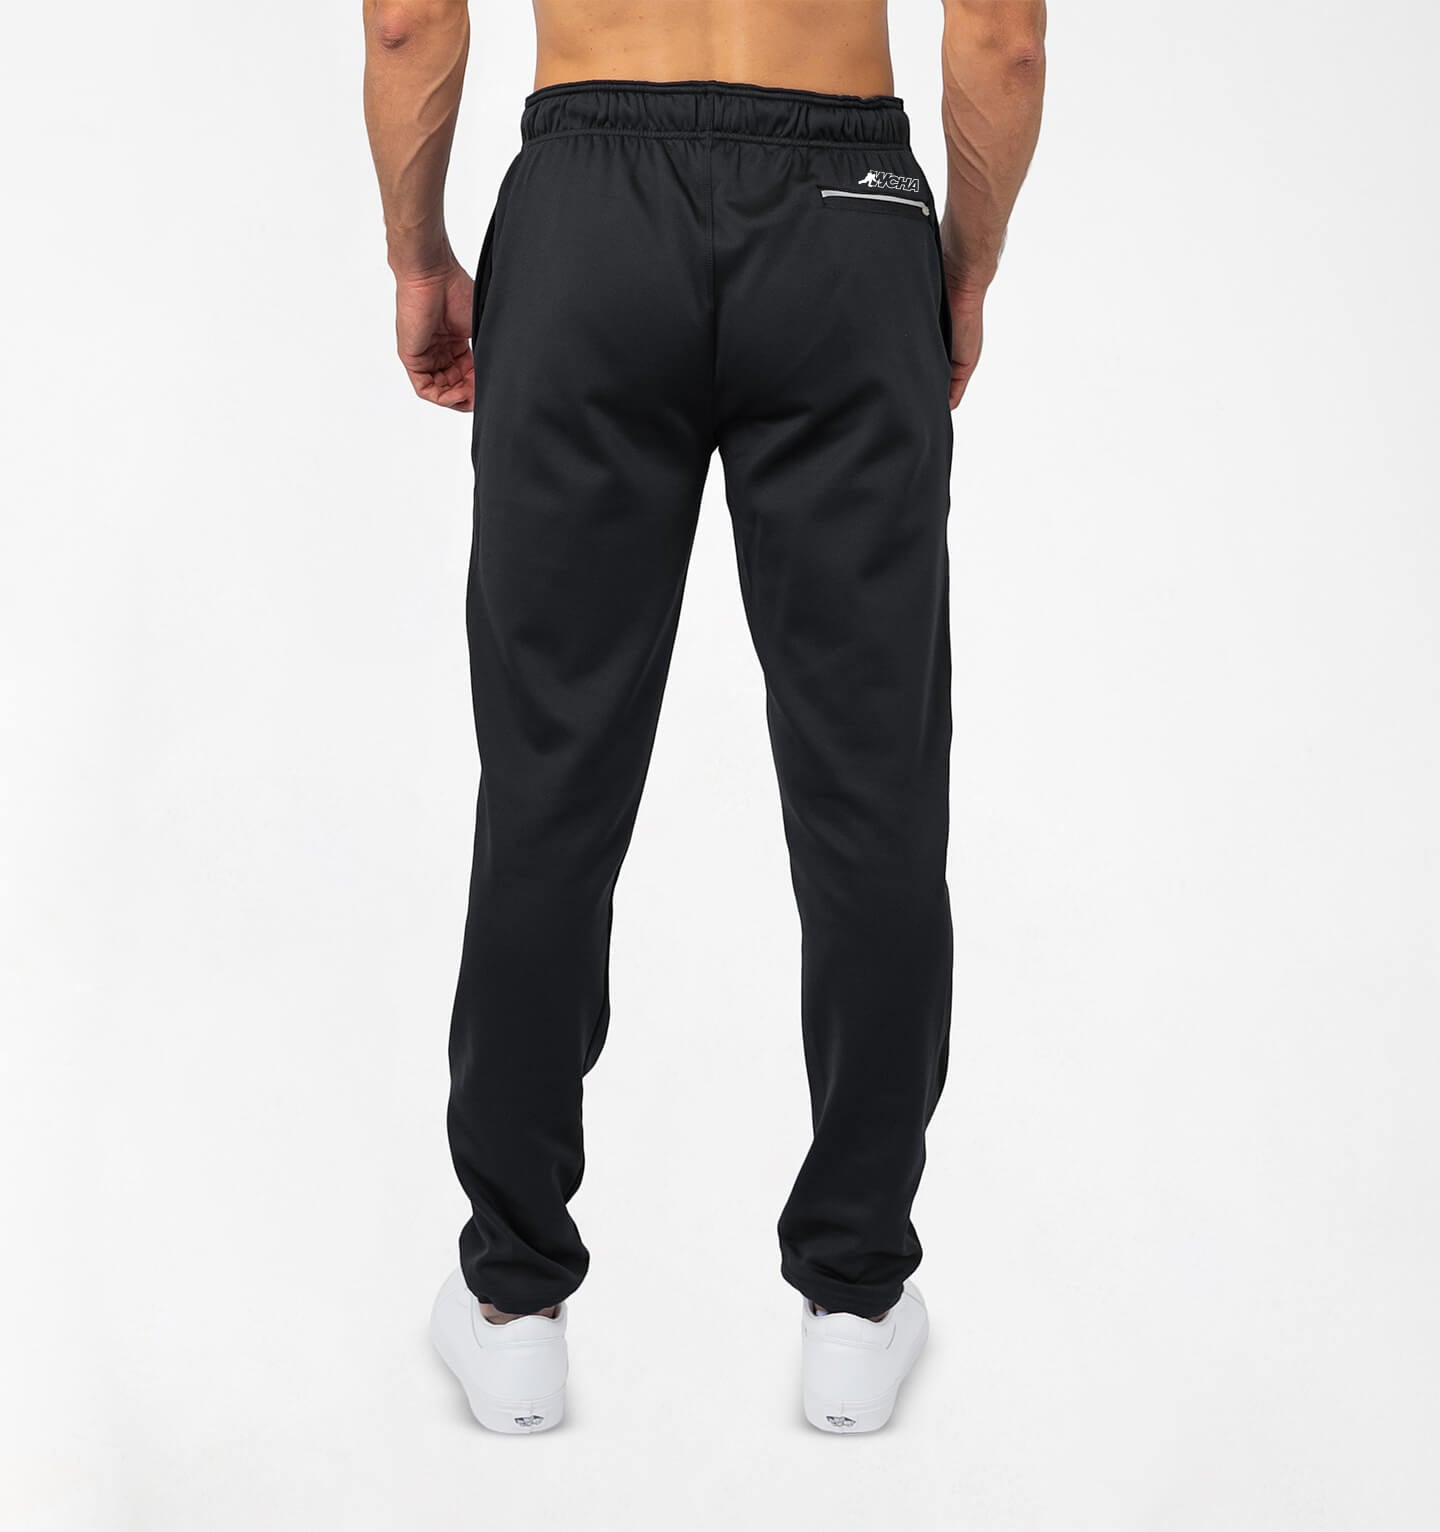 MNSU Mavericks Tech Sweats II